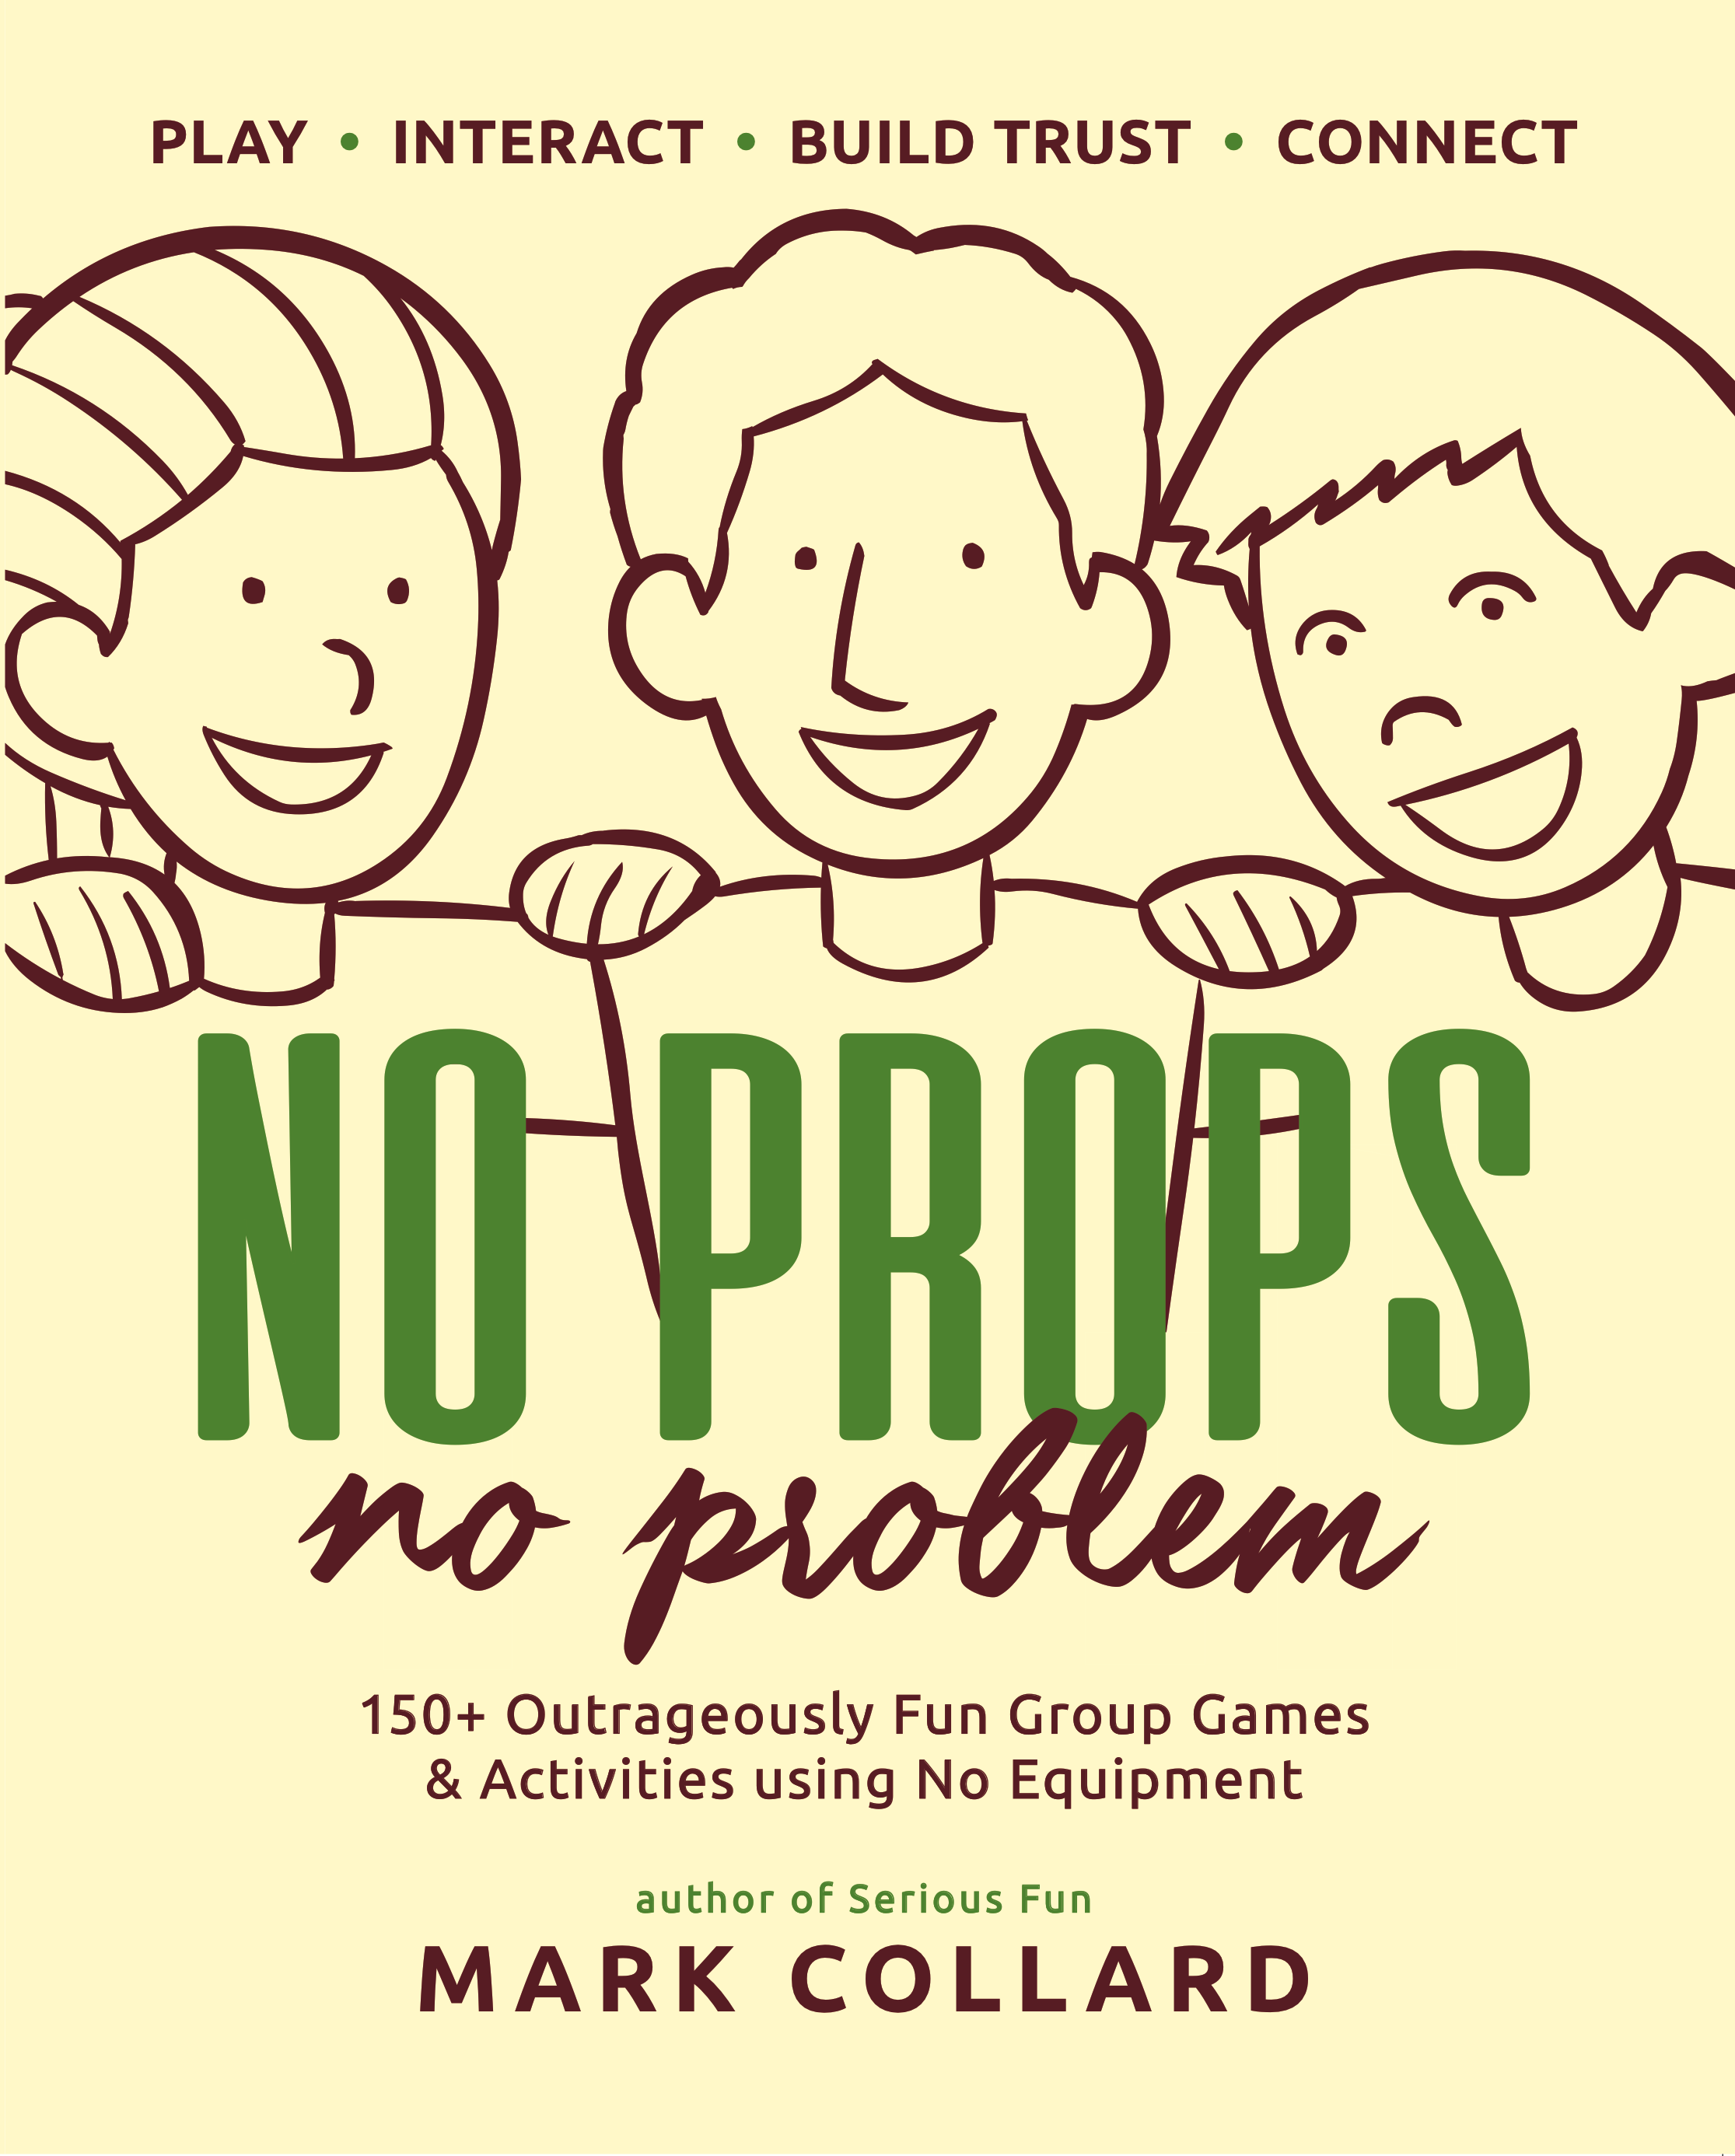 No Props No Problem by Mark Collard, coming soon...